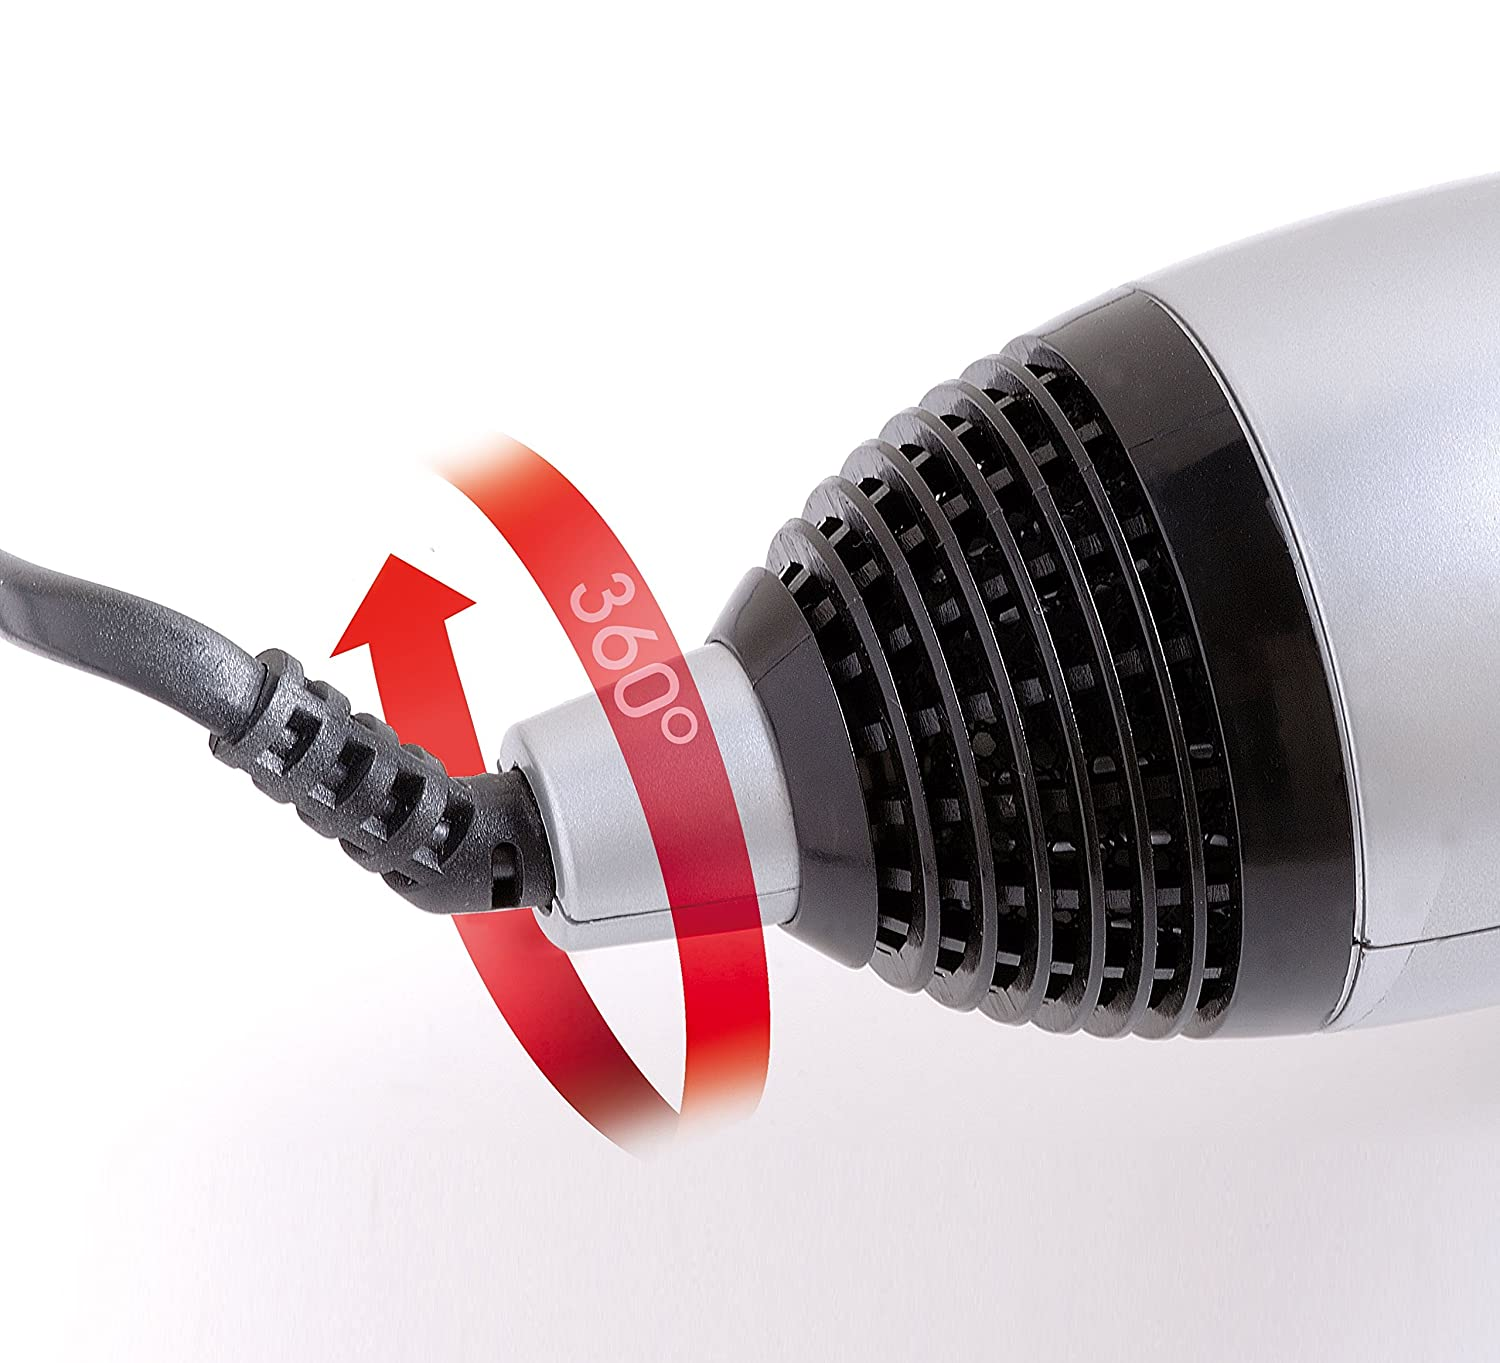 Amazon.com: Palson Dynamic ionic hair styler dryer: Health & Personal Care